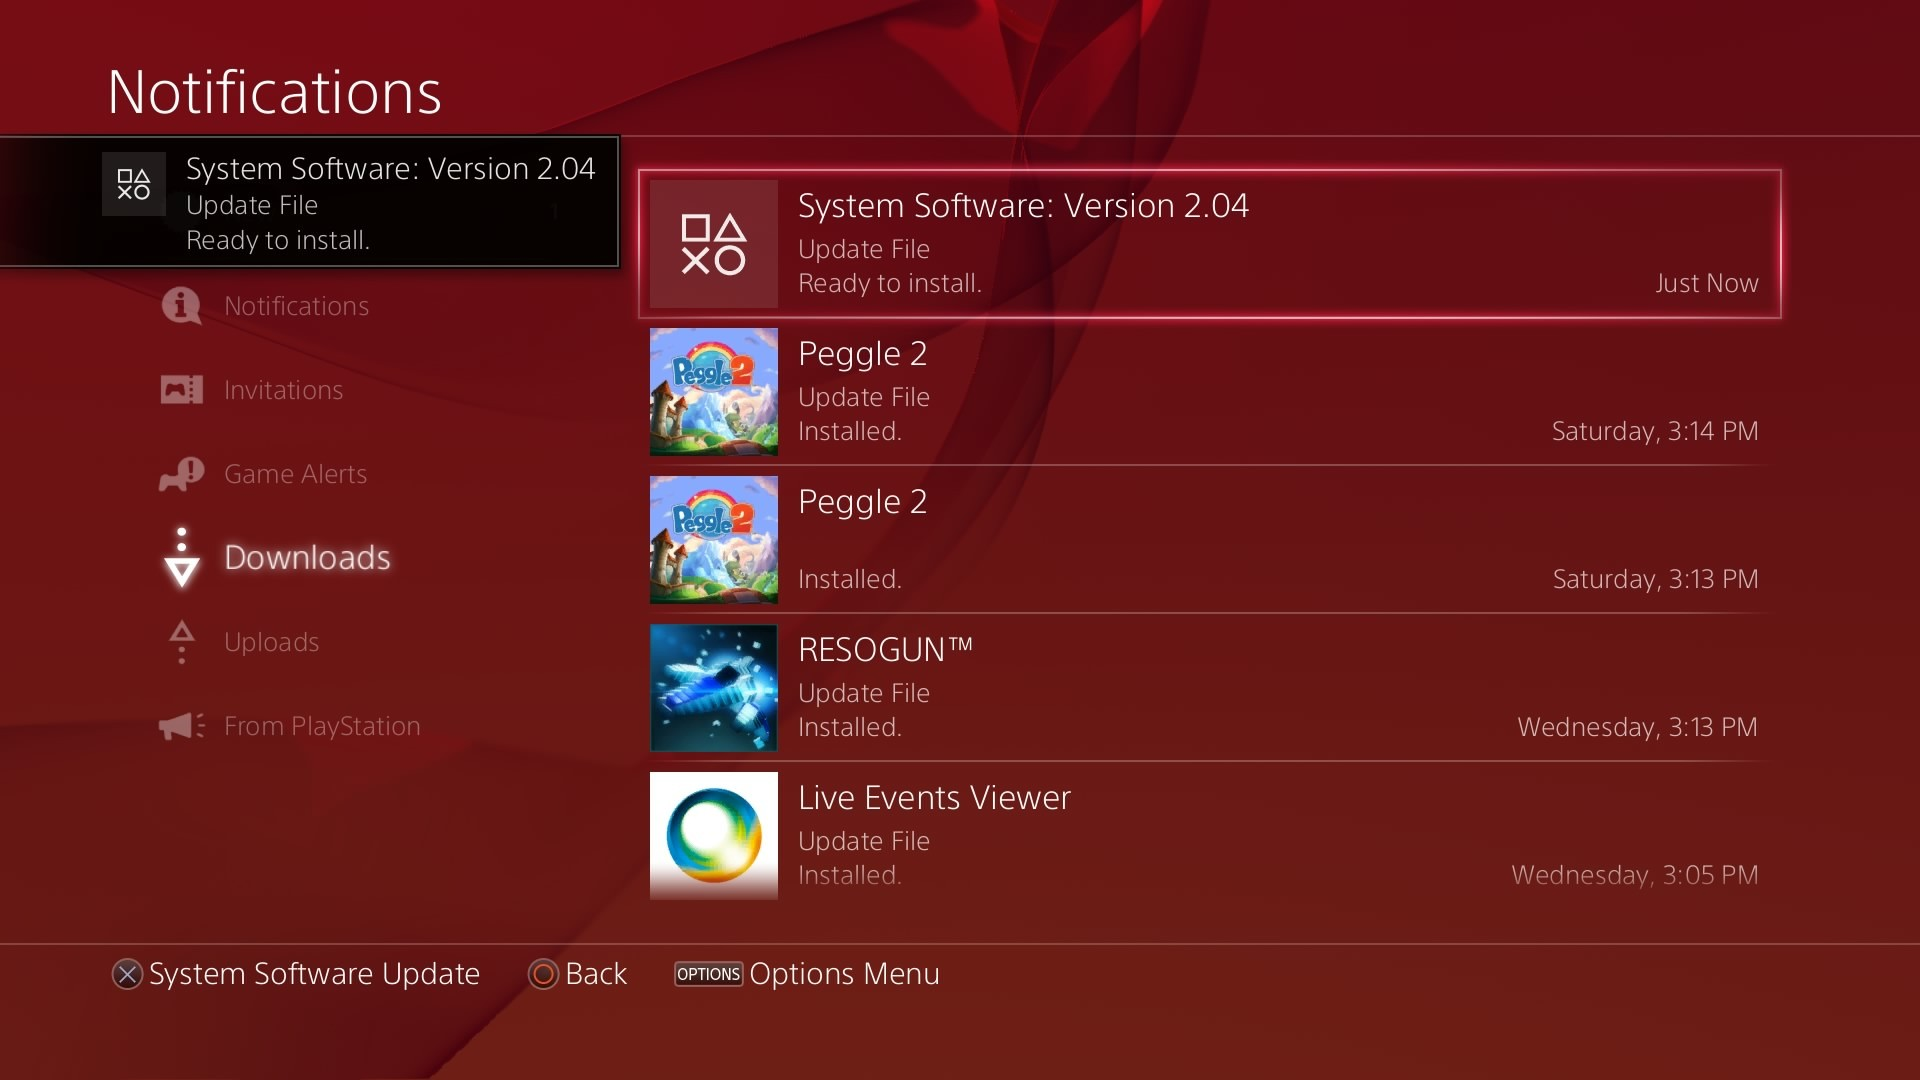 sony software downloads